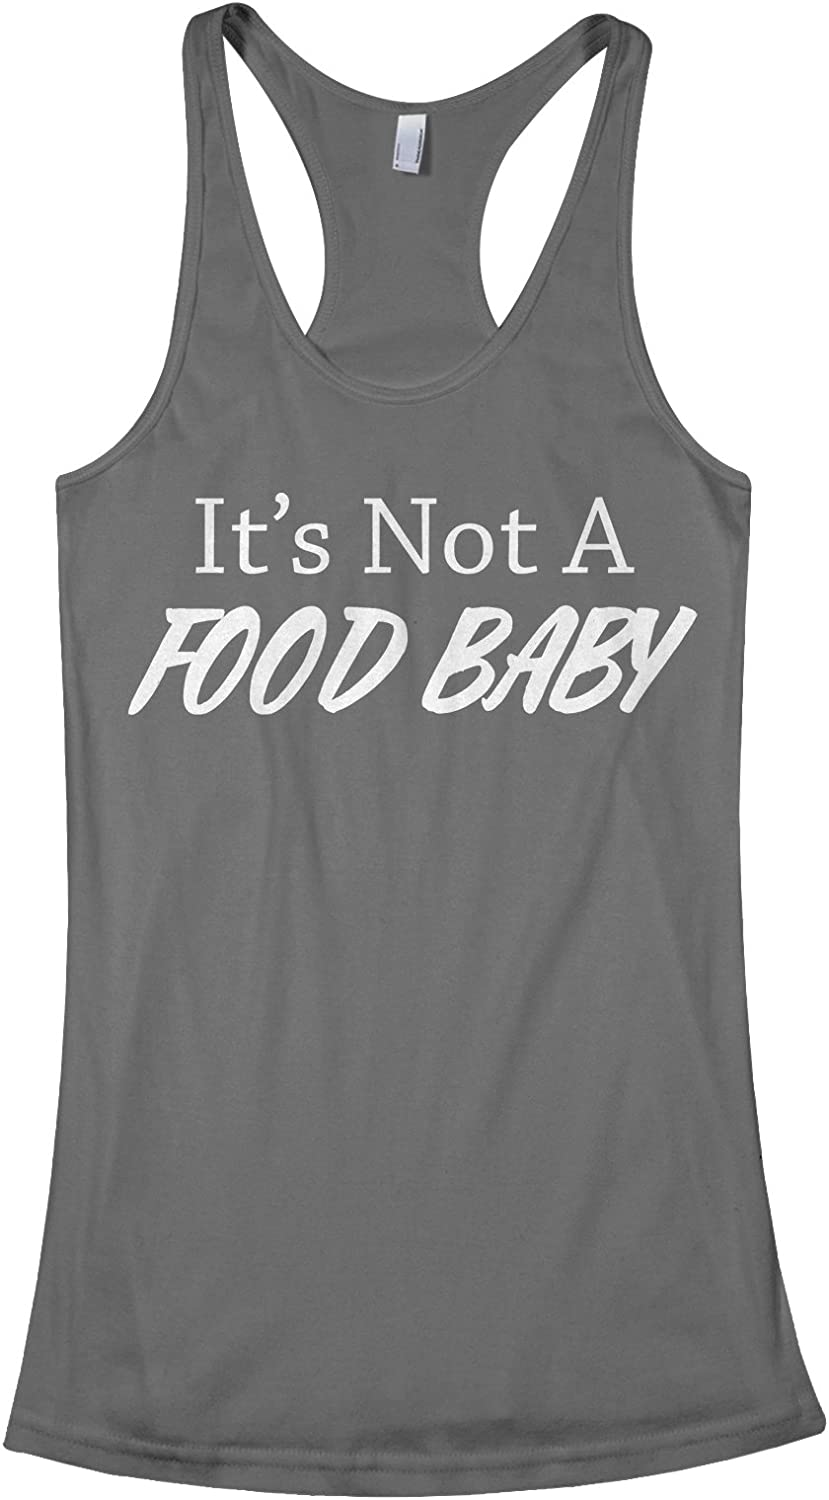 Threadrock Women's It's Not A Food Baby Racerback Tank Top